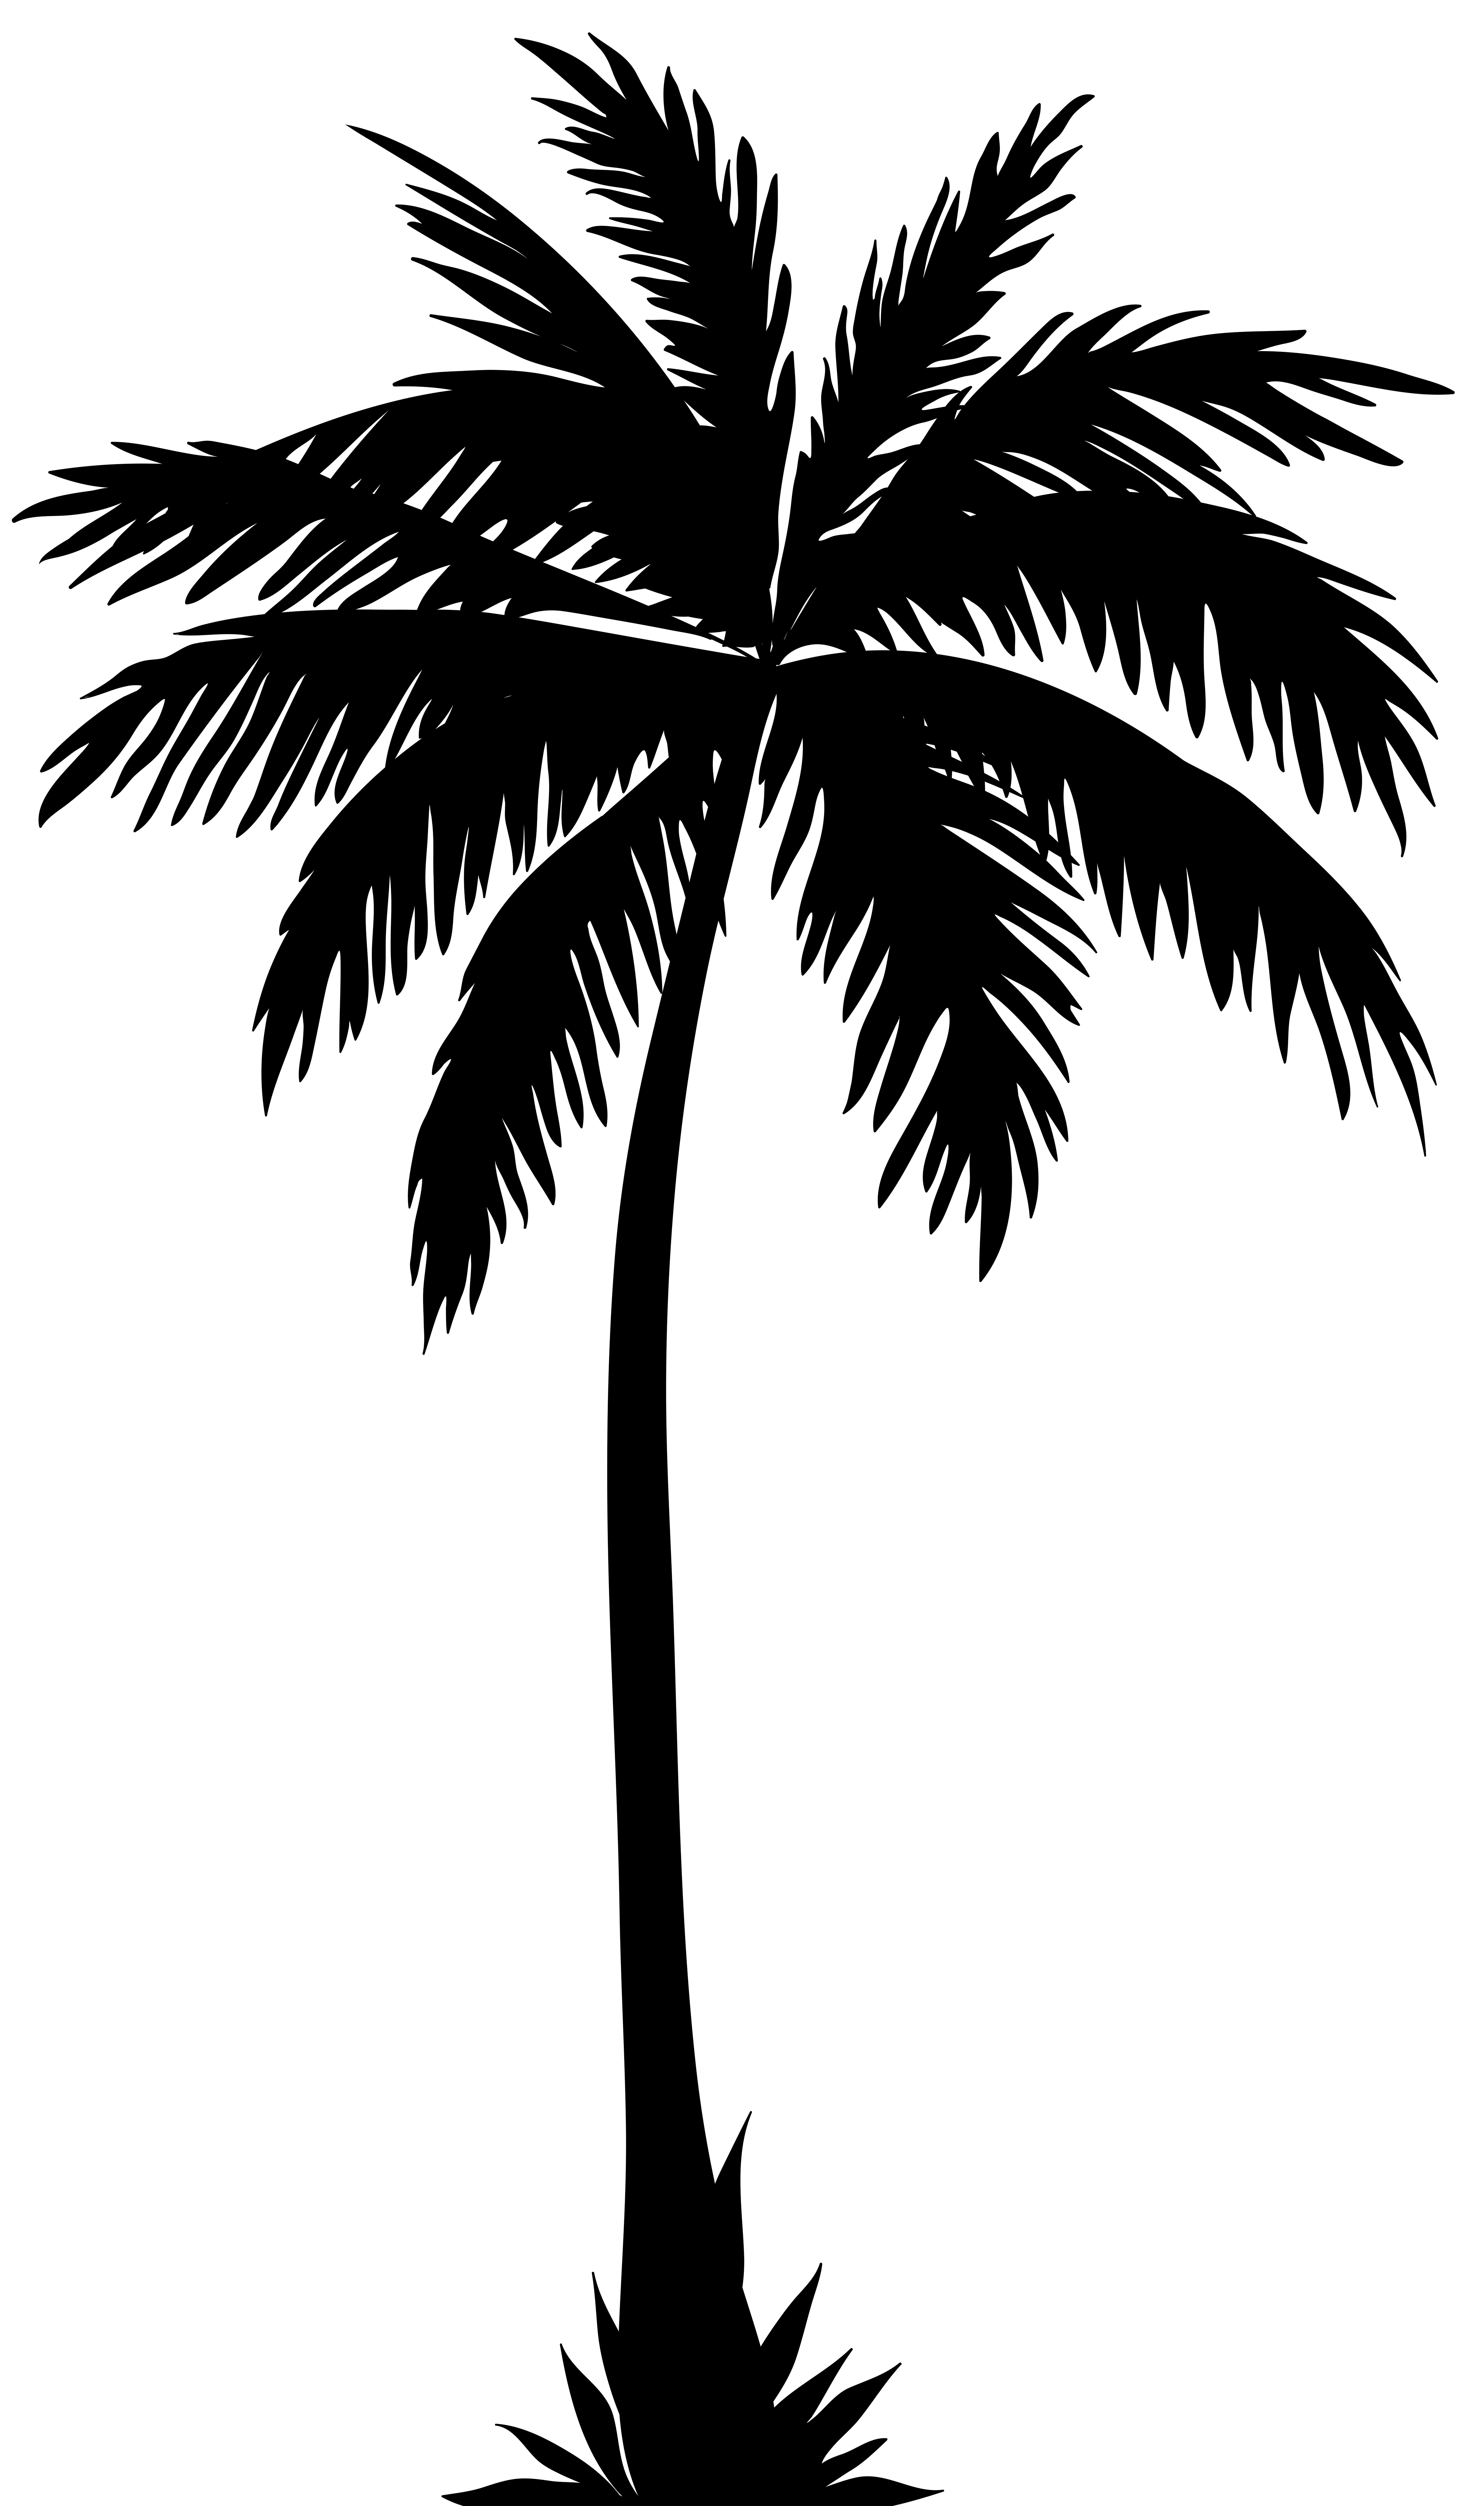 medium resolution of palm tree silhouette png clip art image